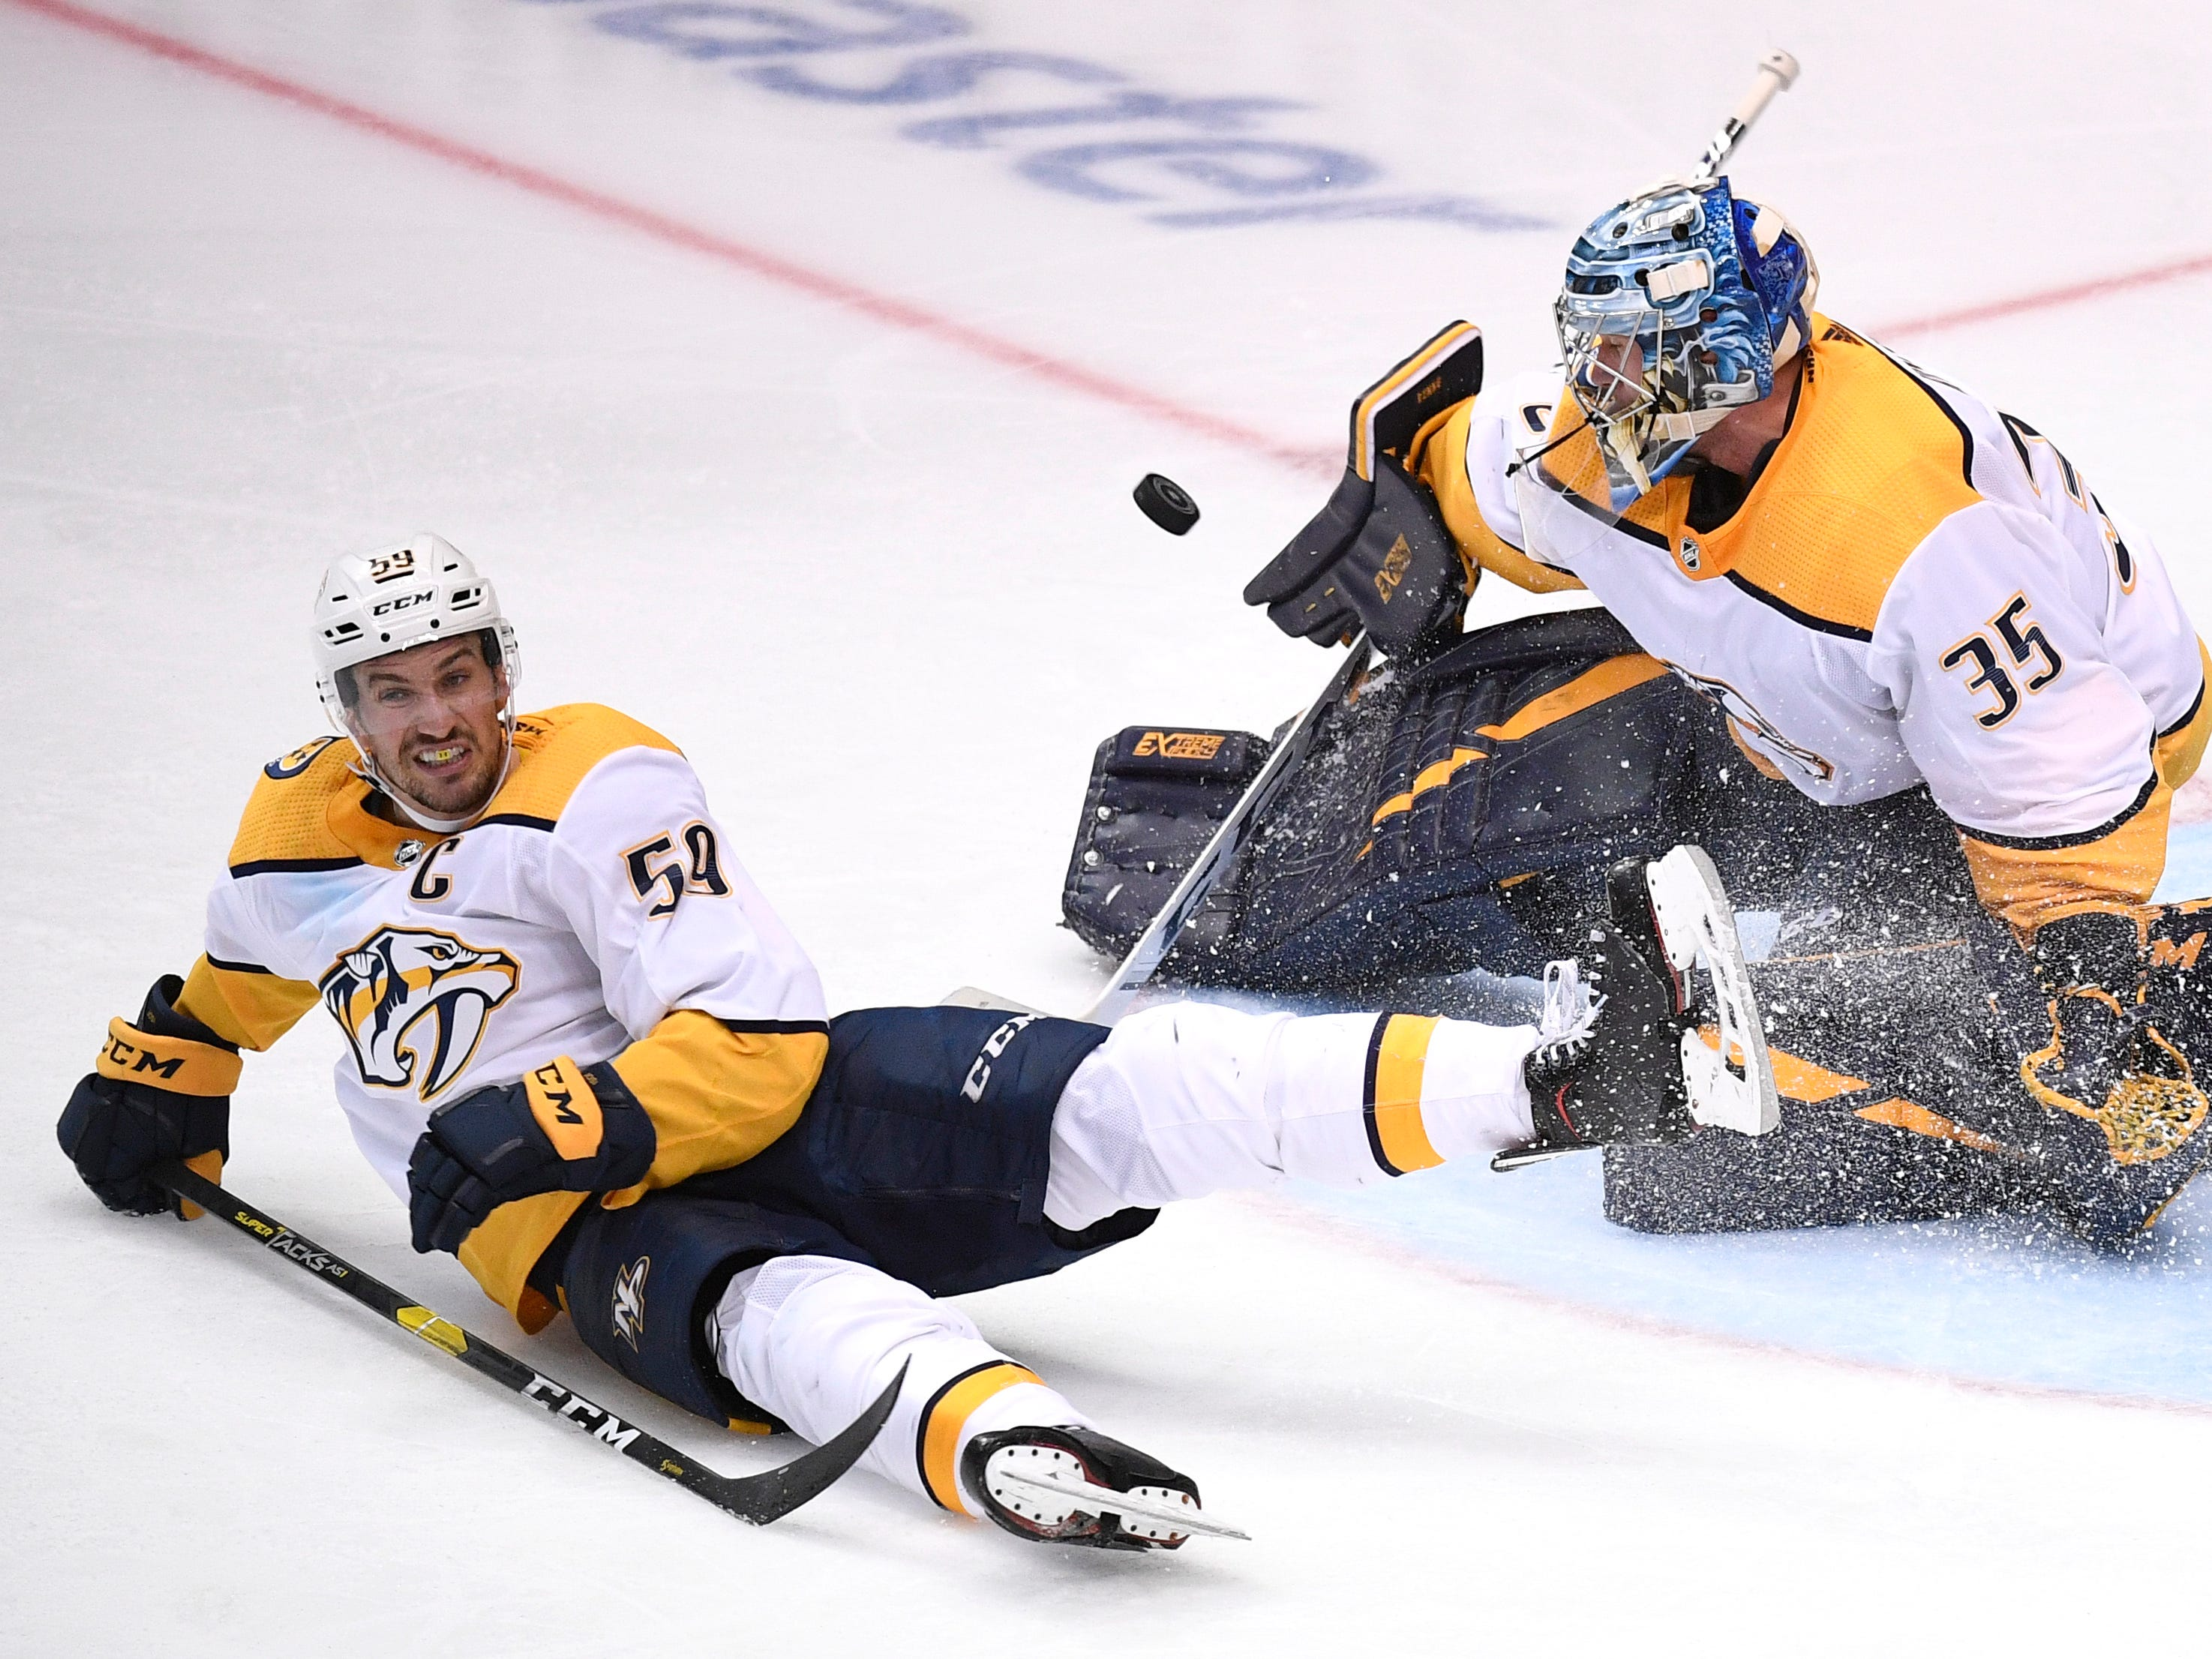 Nashville Predators defenseman Roman Josi (59) goes down in front of Nashville Predators goaltender Pekka Rinne (35) defending the net against a Dallas Stars shot during overtime of the divisional semifinal game at the American Airlines Center in Dallas, Texas, Monday, April 22, 2019.